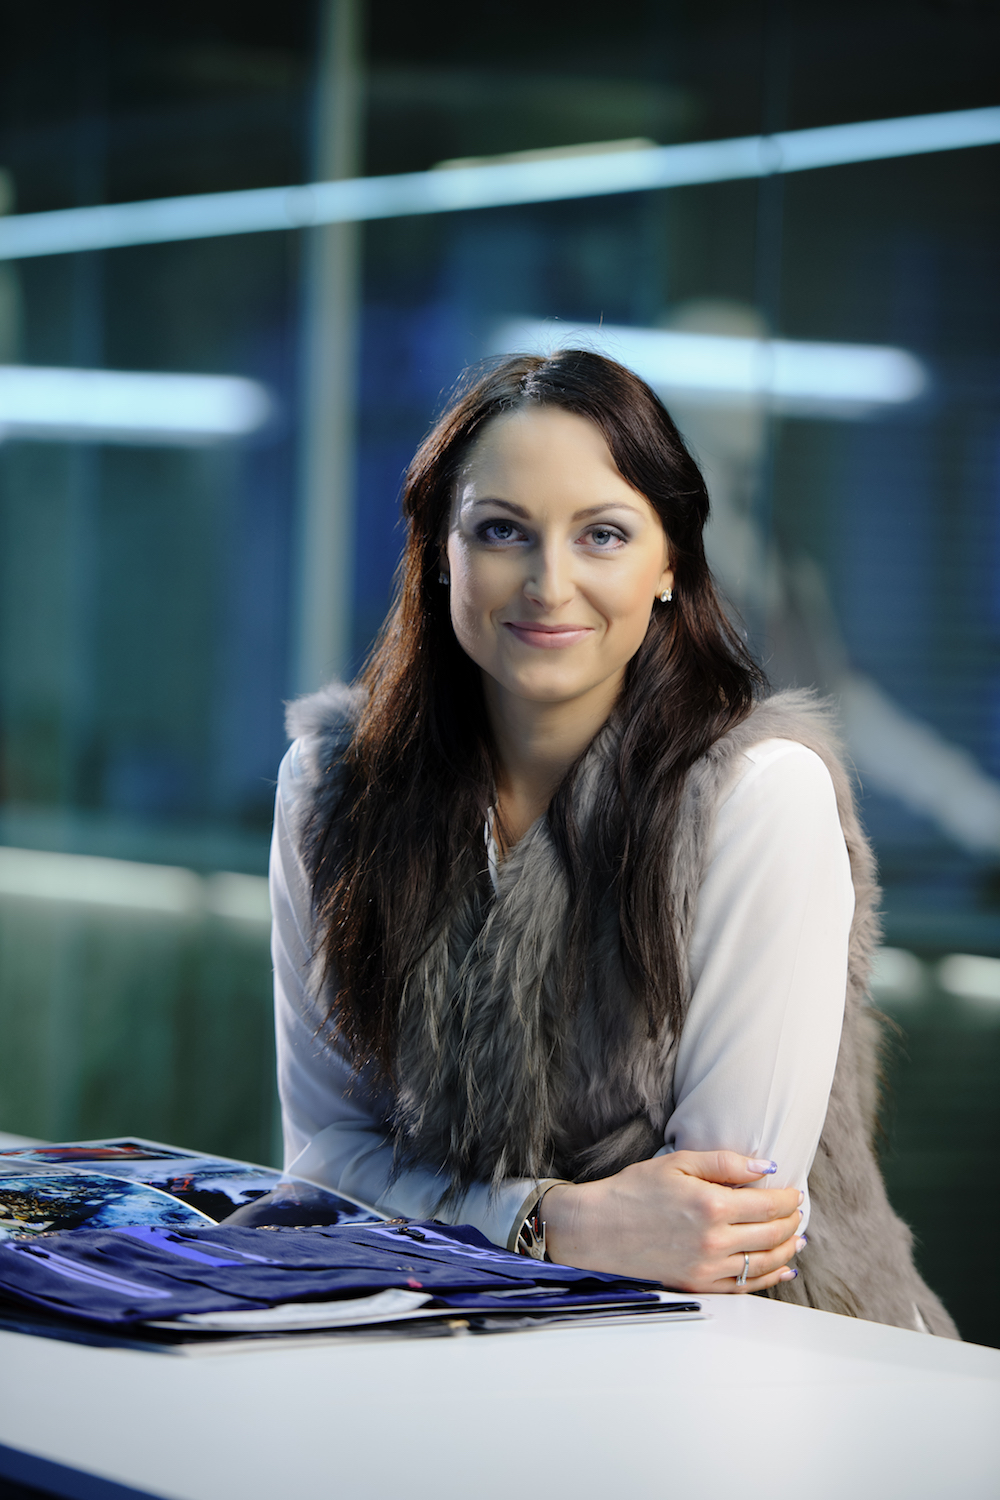 Simona Samarokova   Meet Simona, 28 who is leader of LTP Innovation Lab in Kaunas   READ MORE